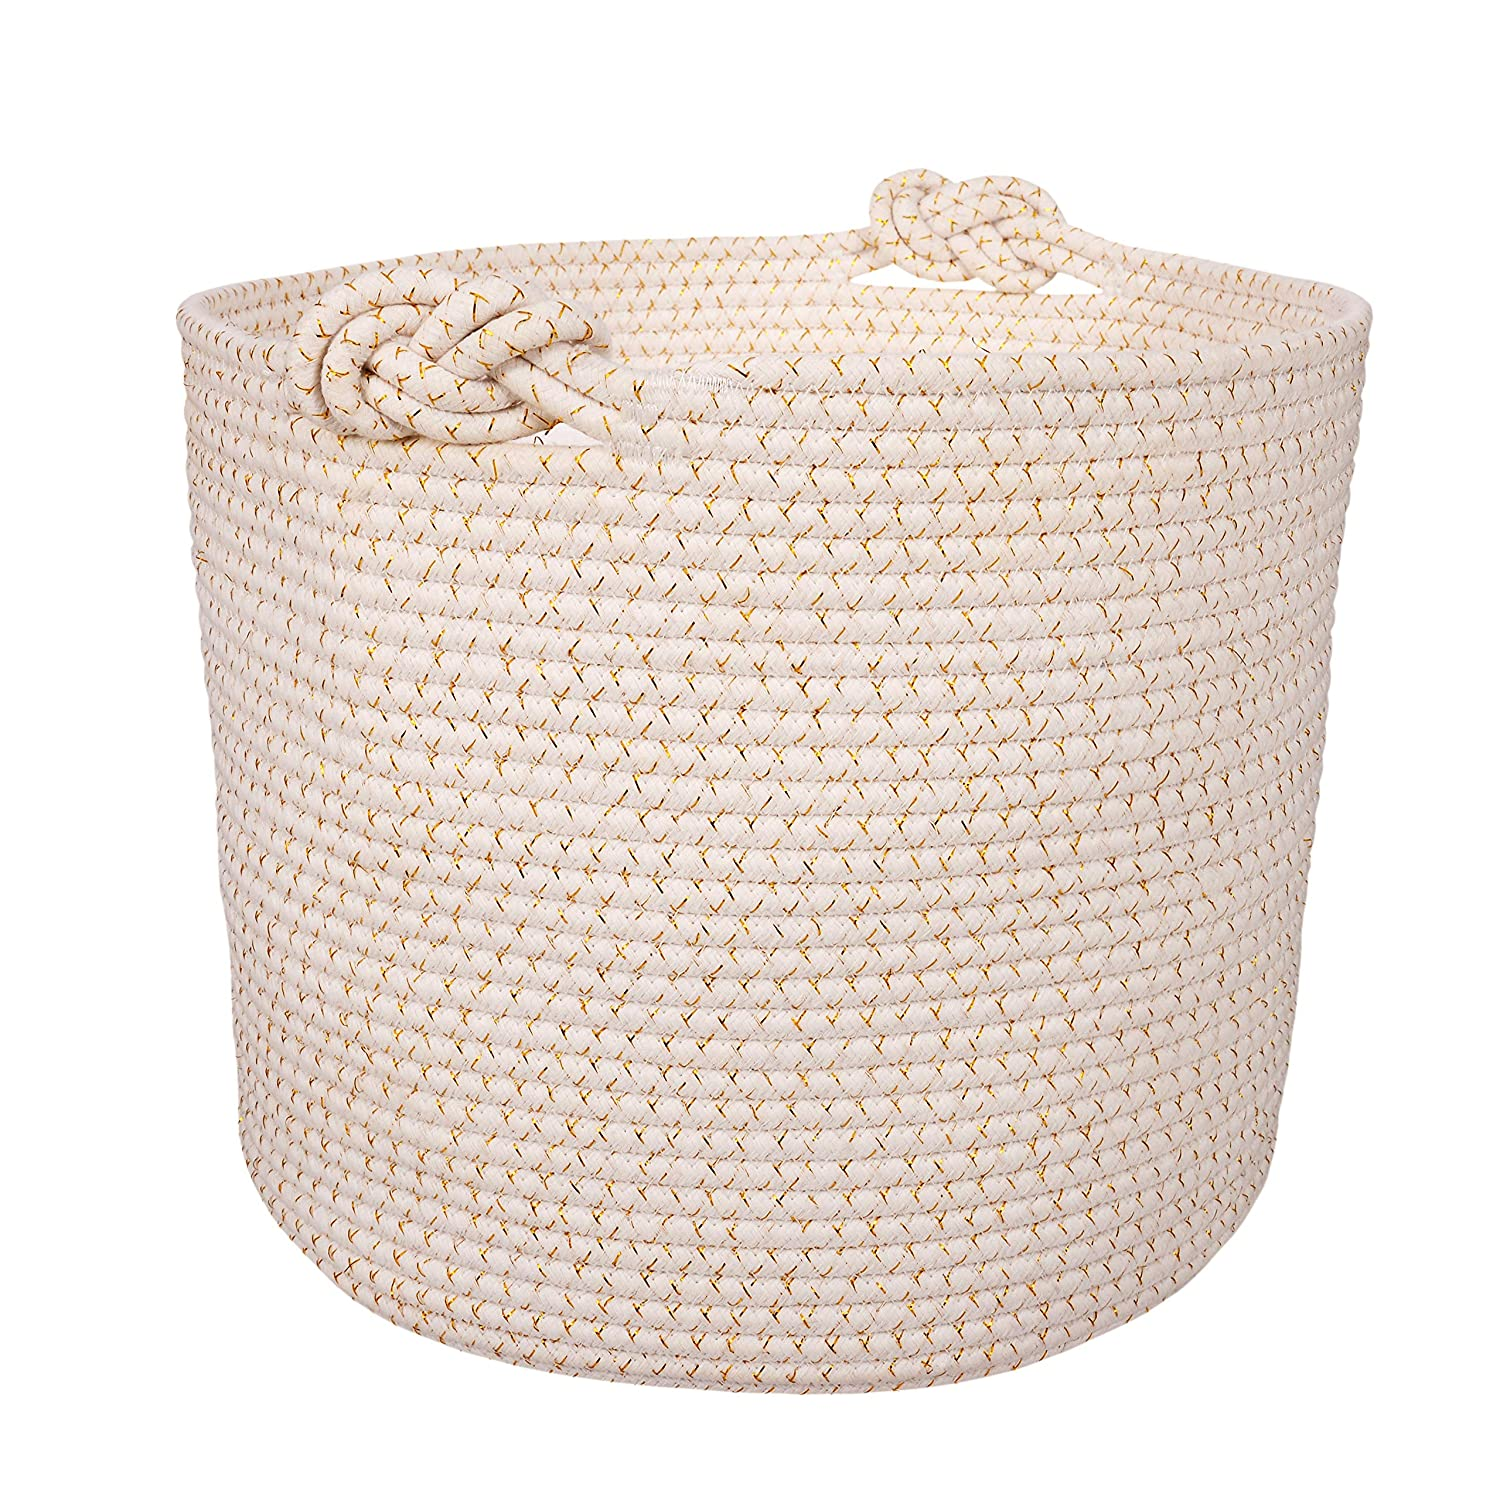 Woven Cotton Rope Storage Basket | Decorative, Elegant & Durable Laundry Hamper | Ergonomic & Multipurpose White Blanket Bin | Stylish & Practical Nursery Organizer | Great Gift Idea - 15